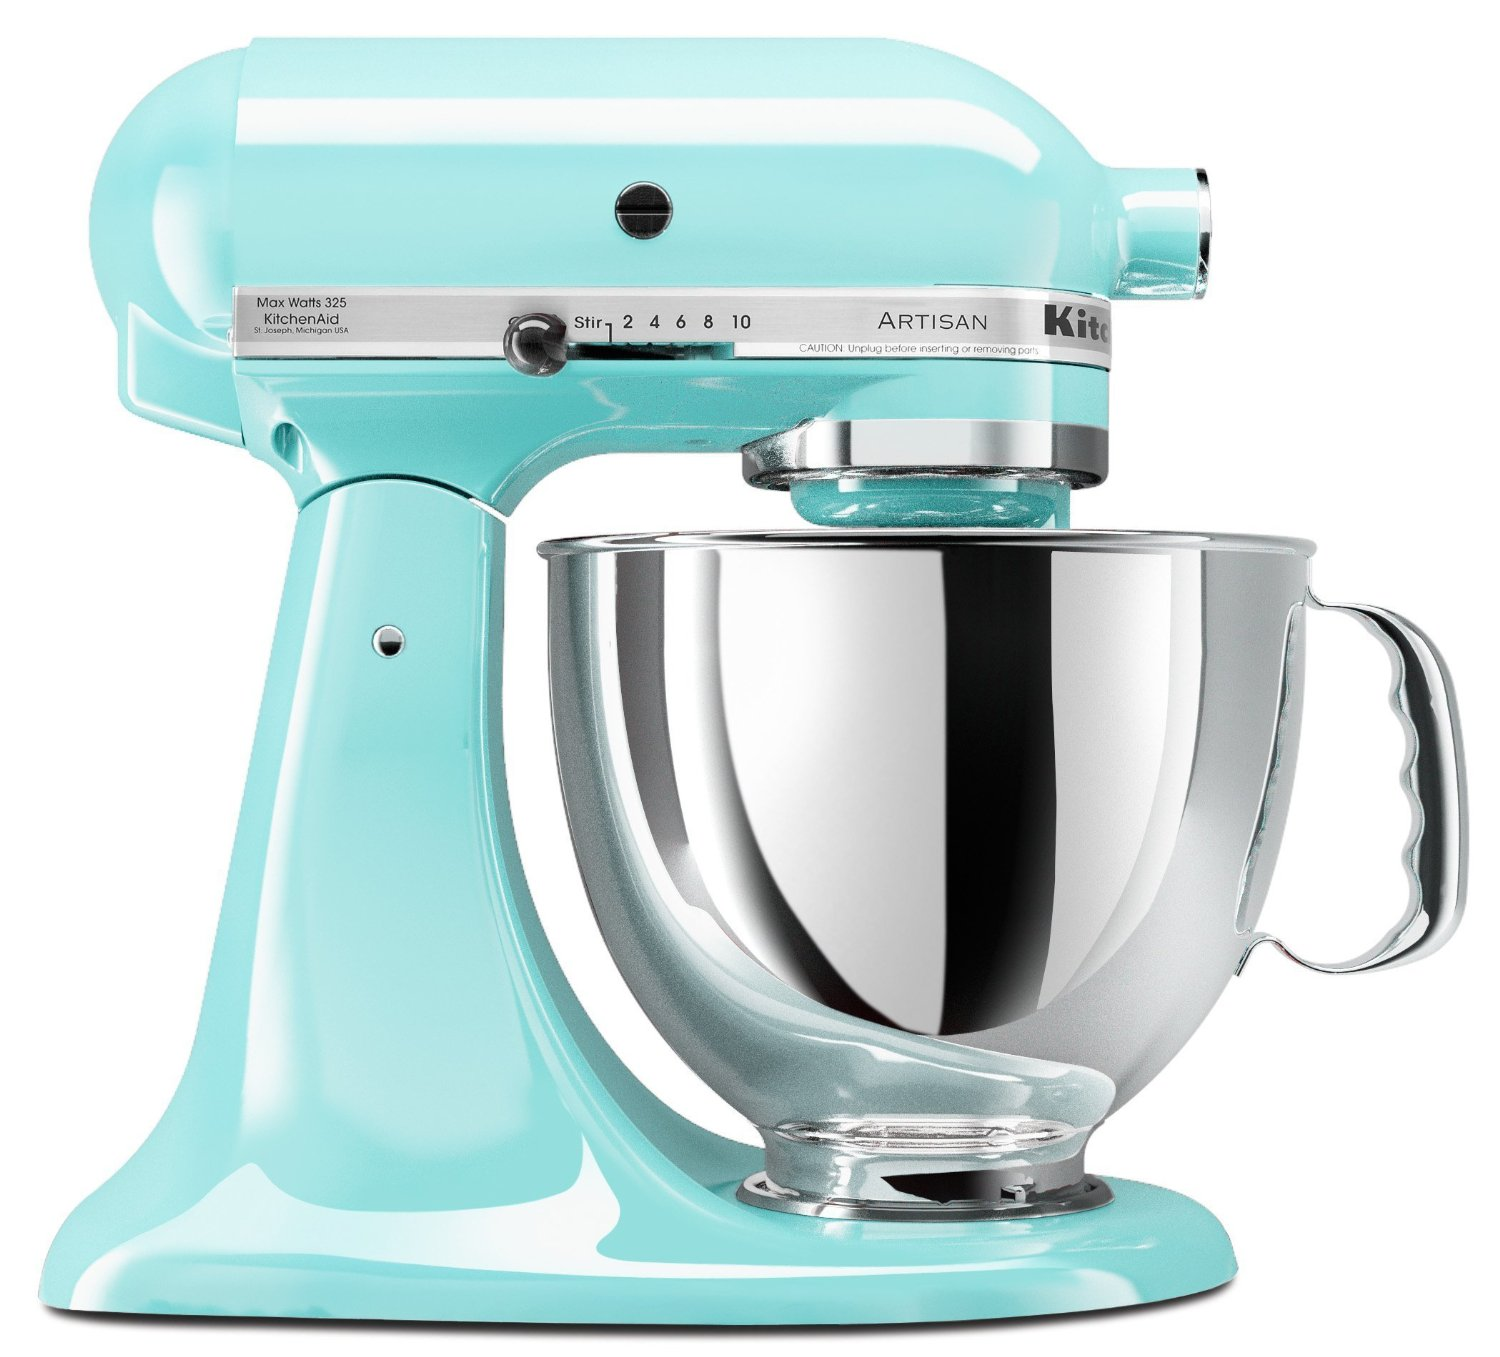 Kitchenmaid mixer Photo - 2